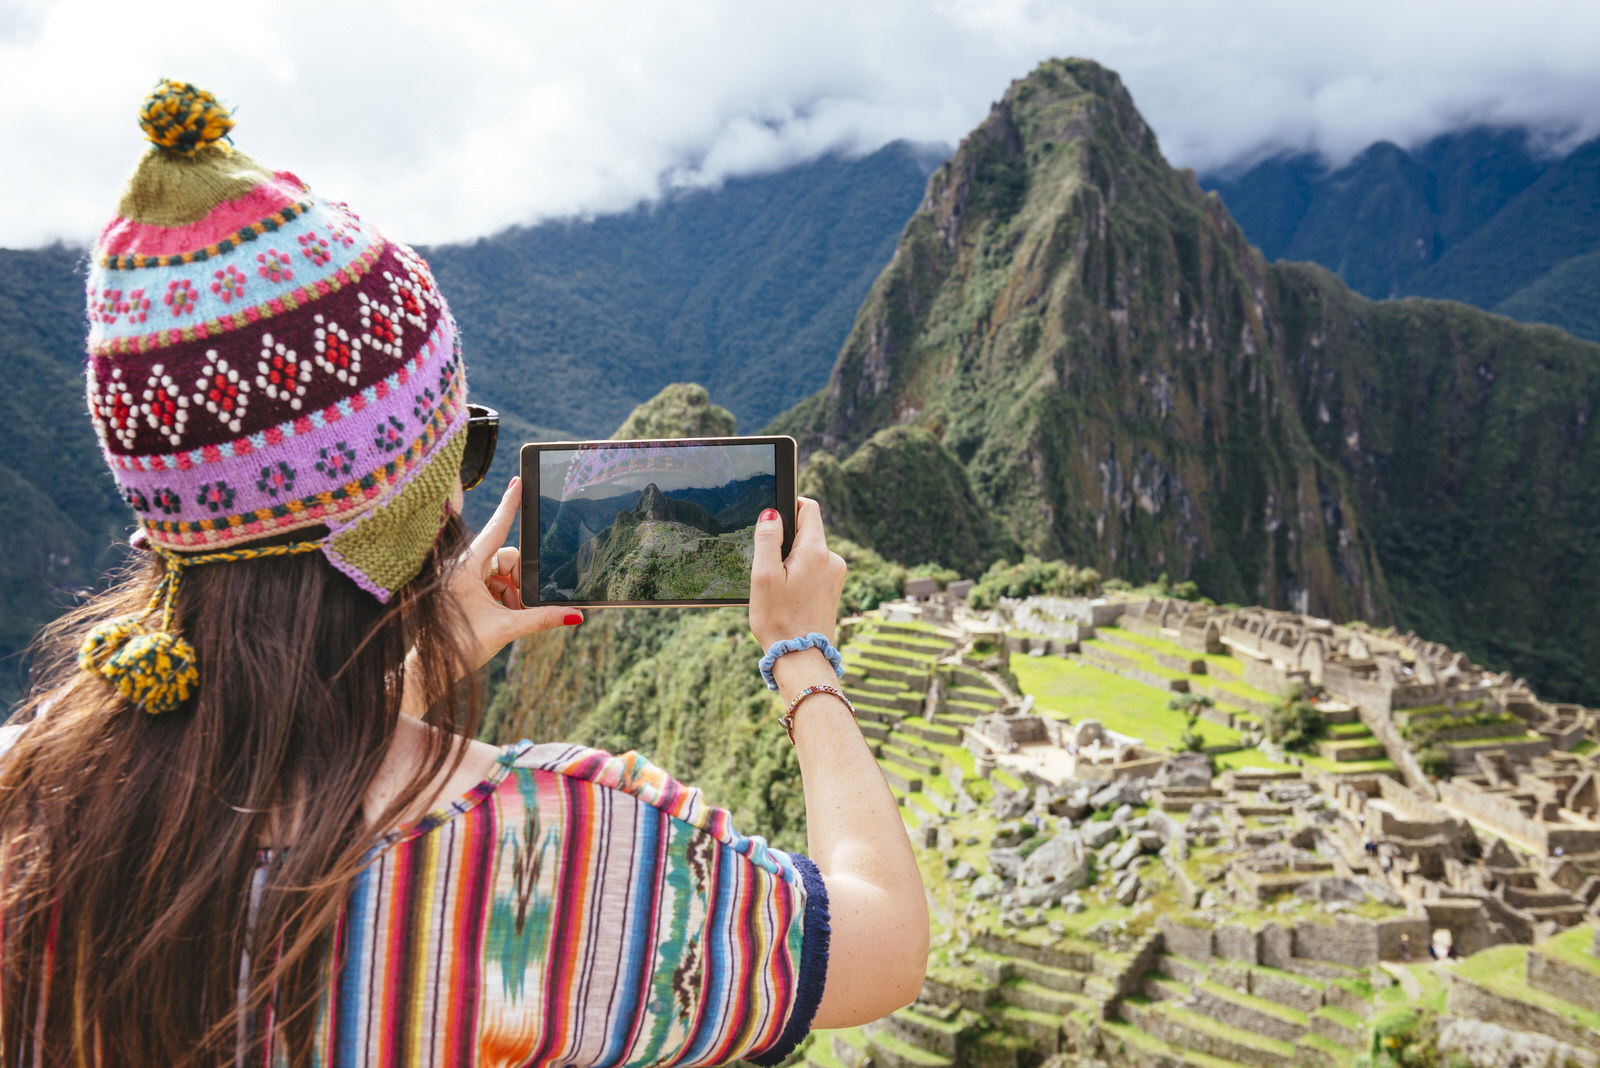 Peru, woman taking pictures of Machu Picchu citadel and Huayna Picchu mountain with a tablet